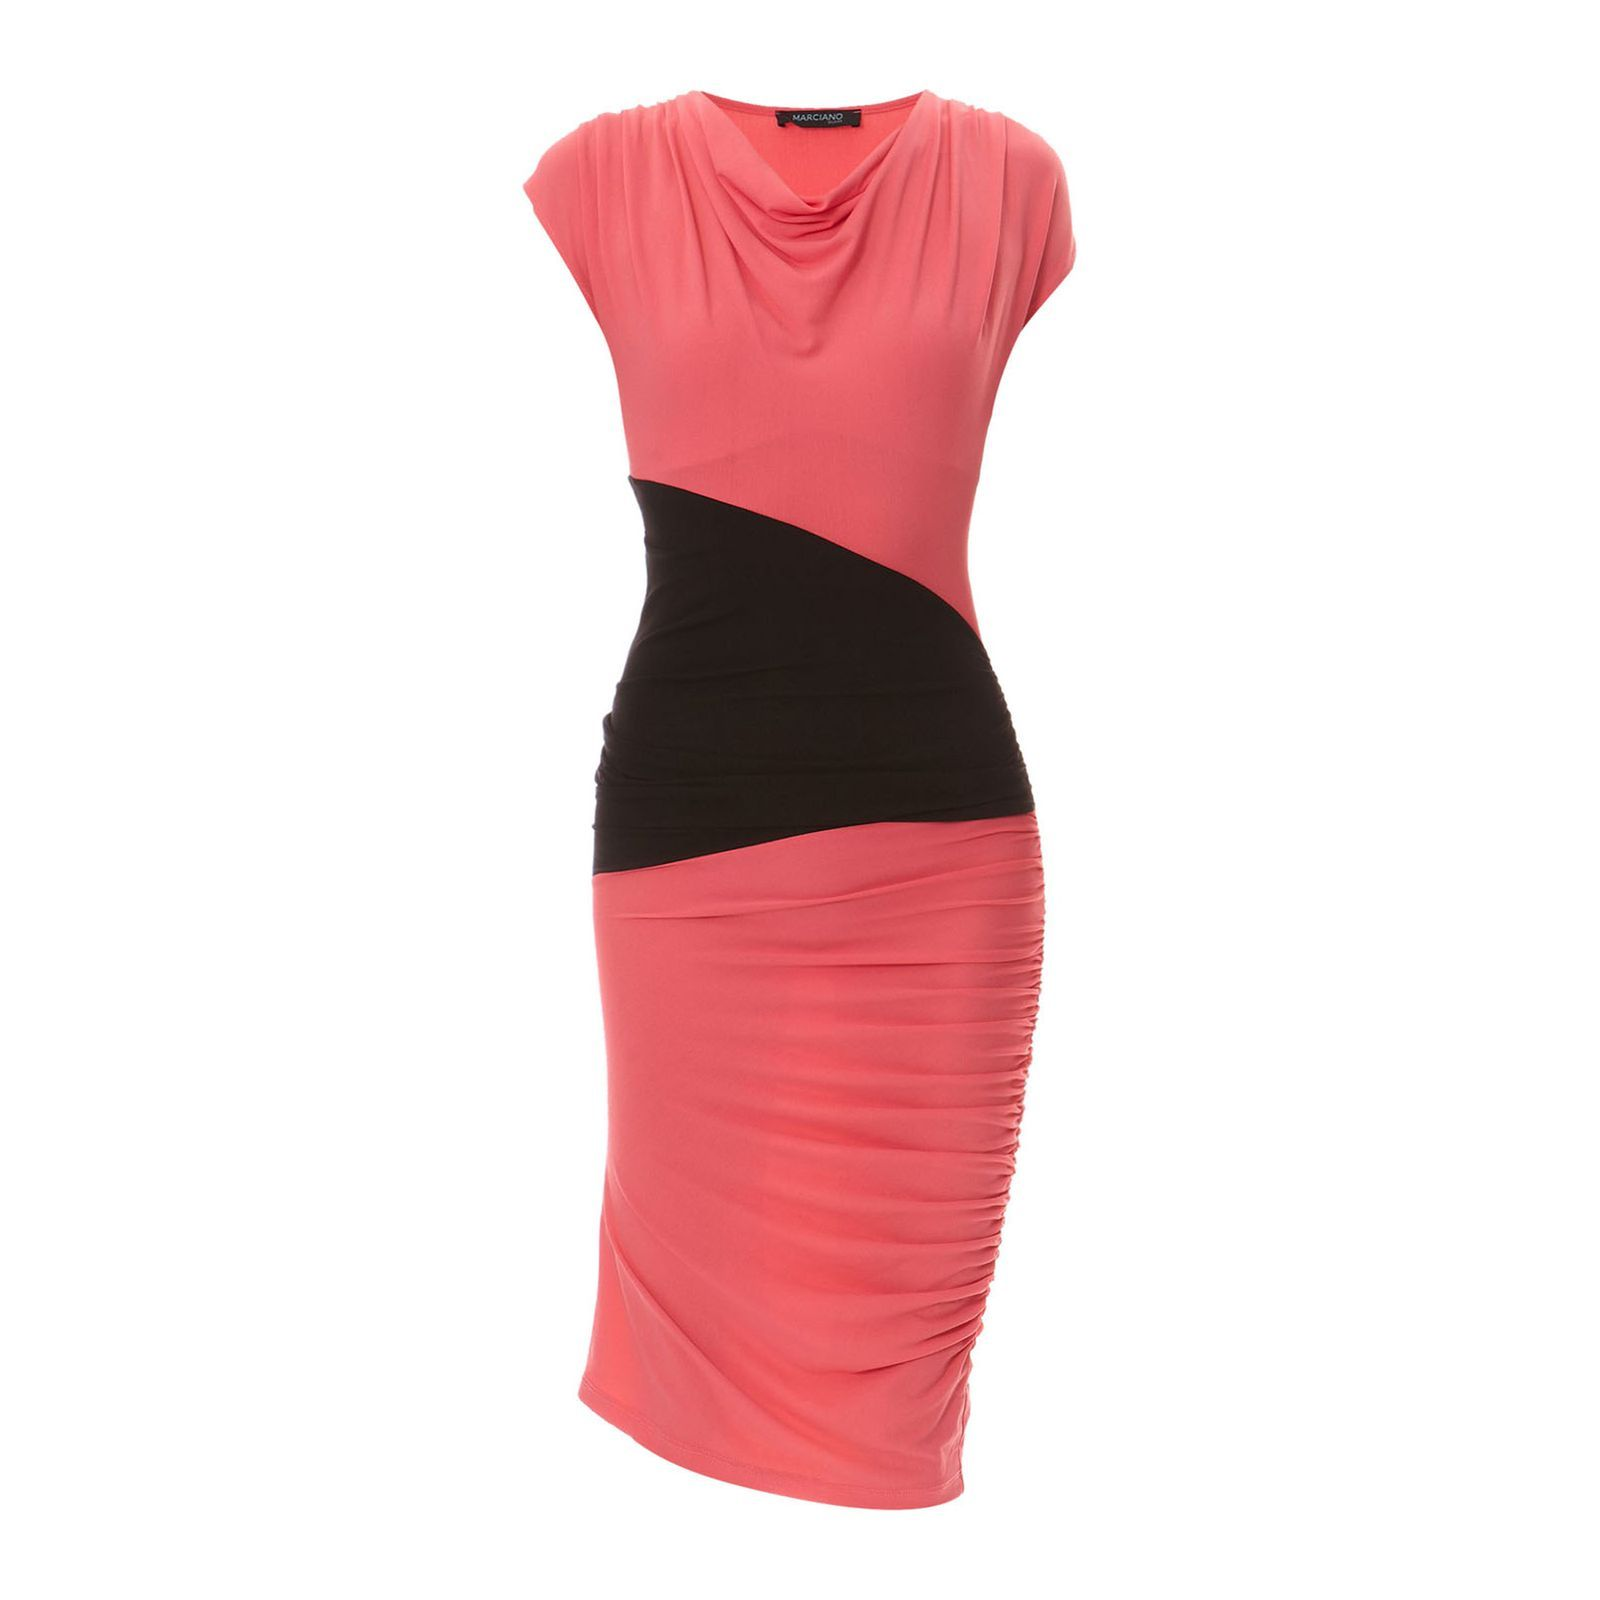 Marciano Guess :  Robe - rose et noir